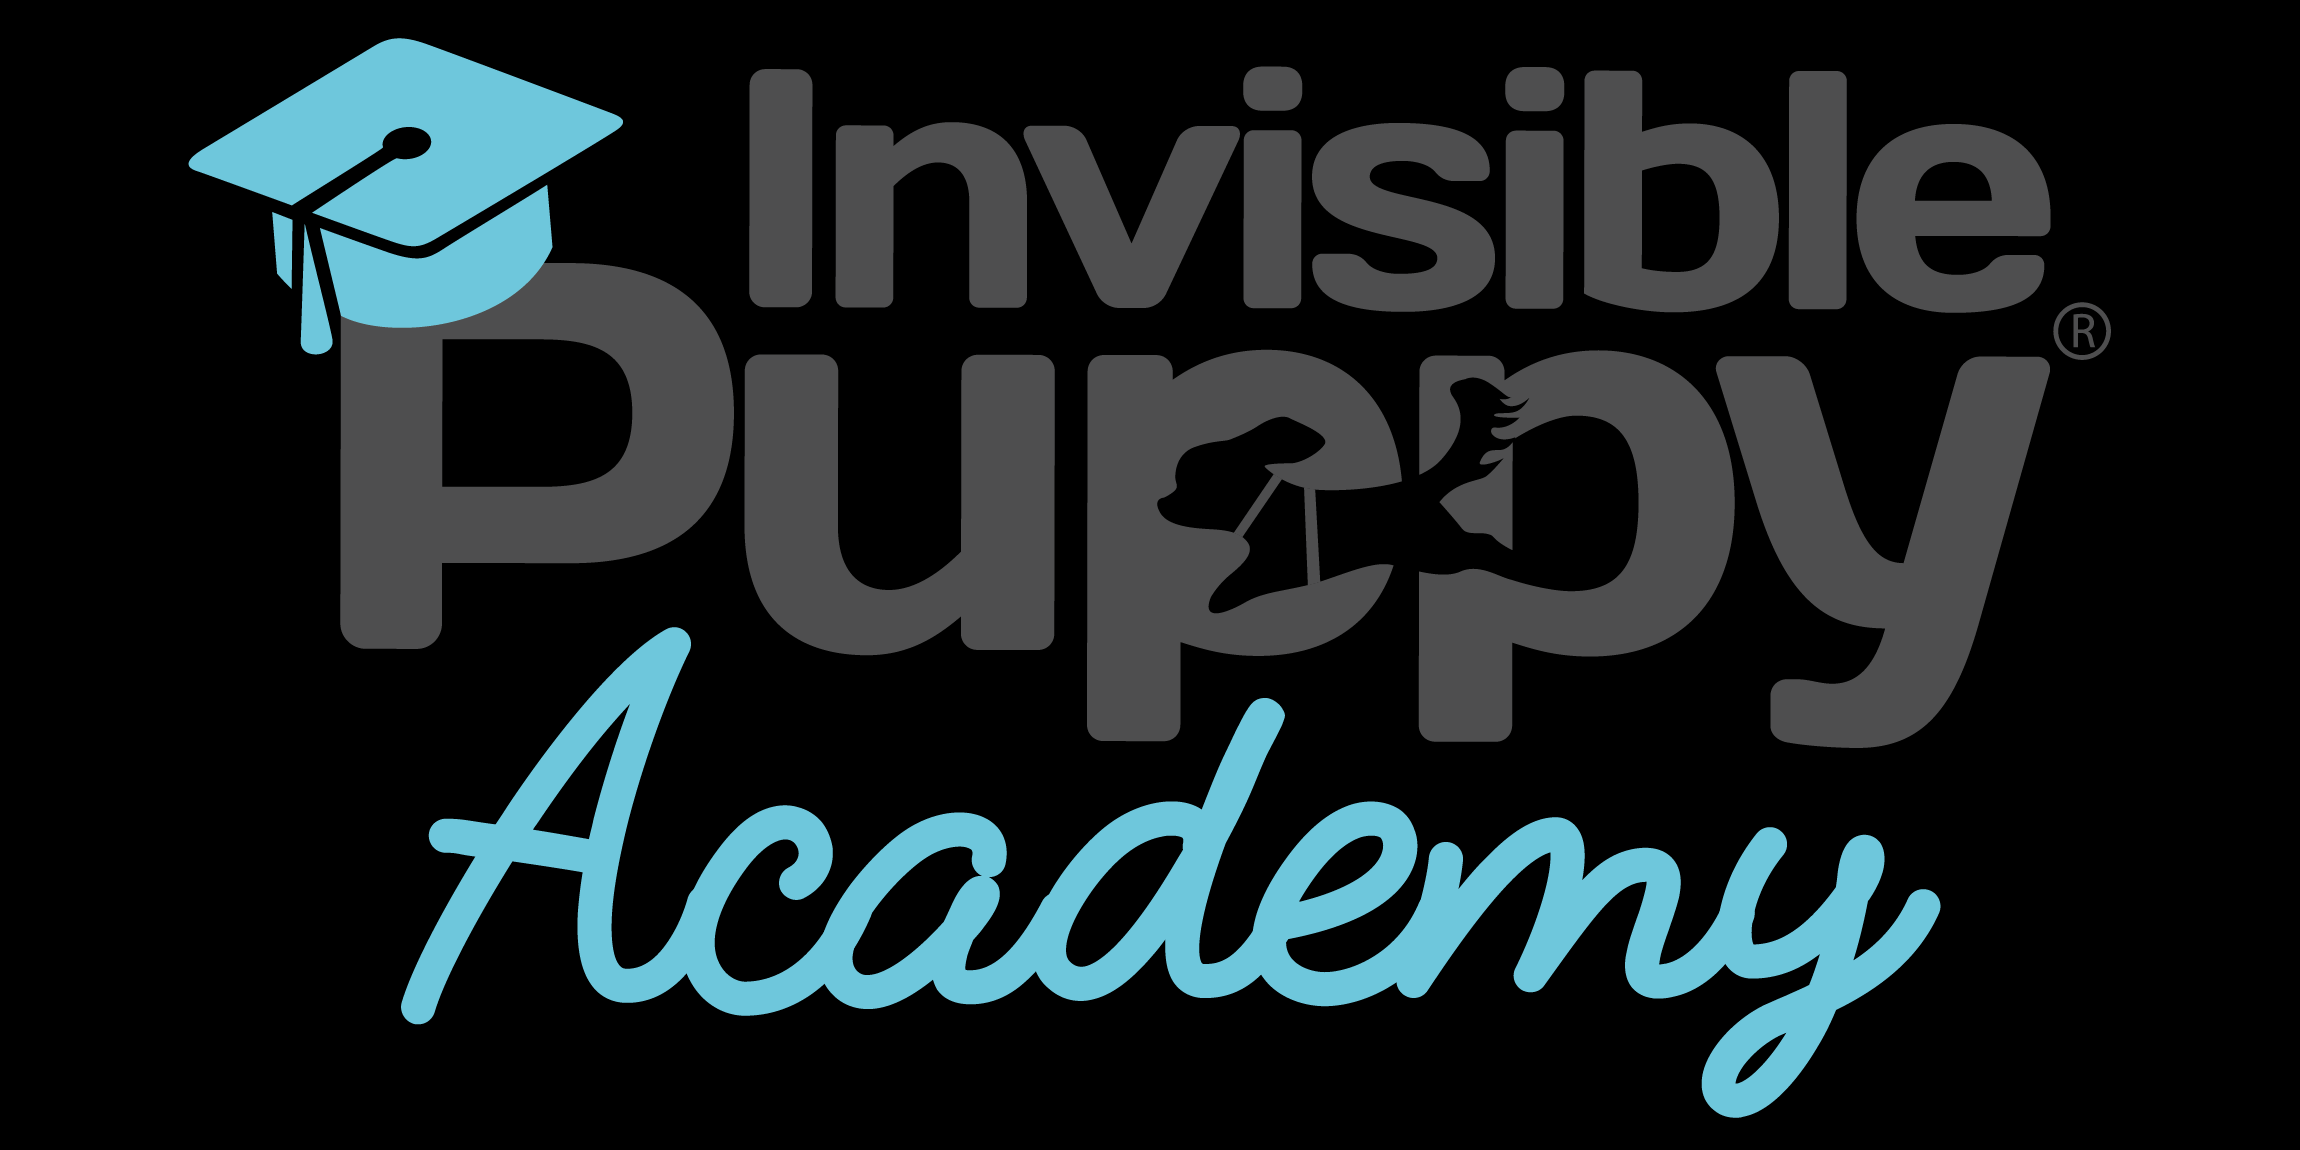 De Invisible Puppy Academy is geopend!